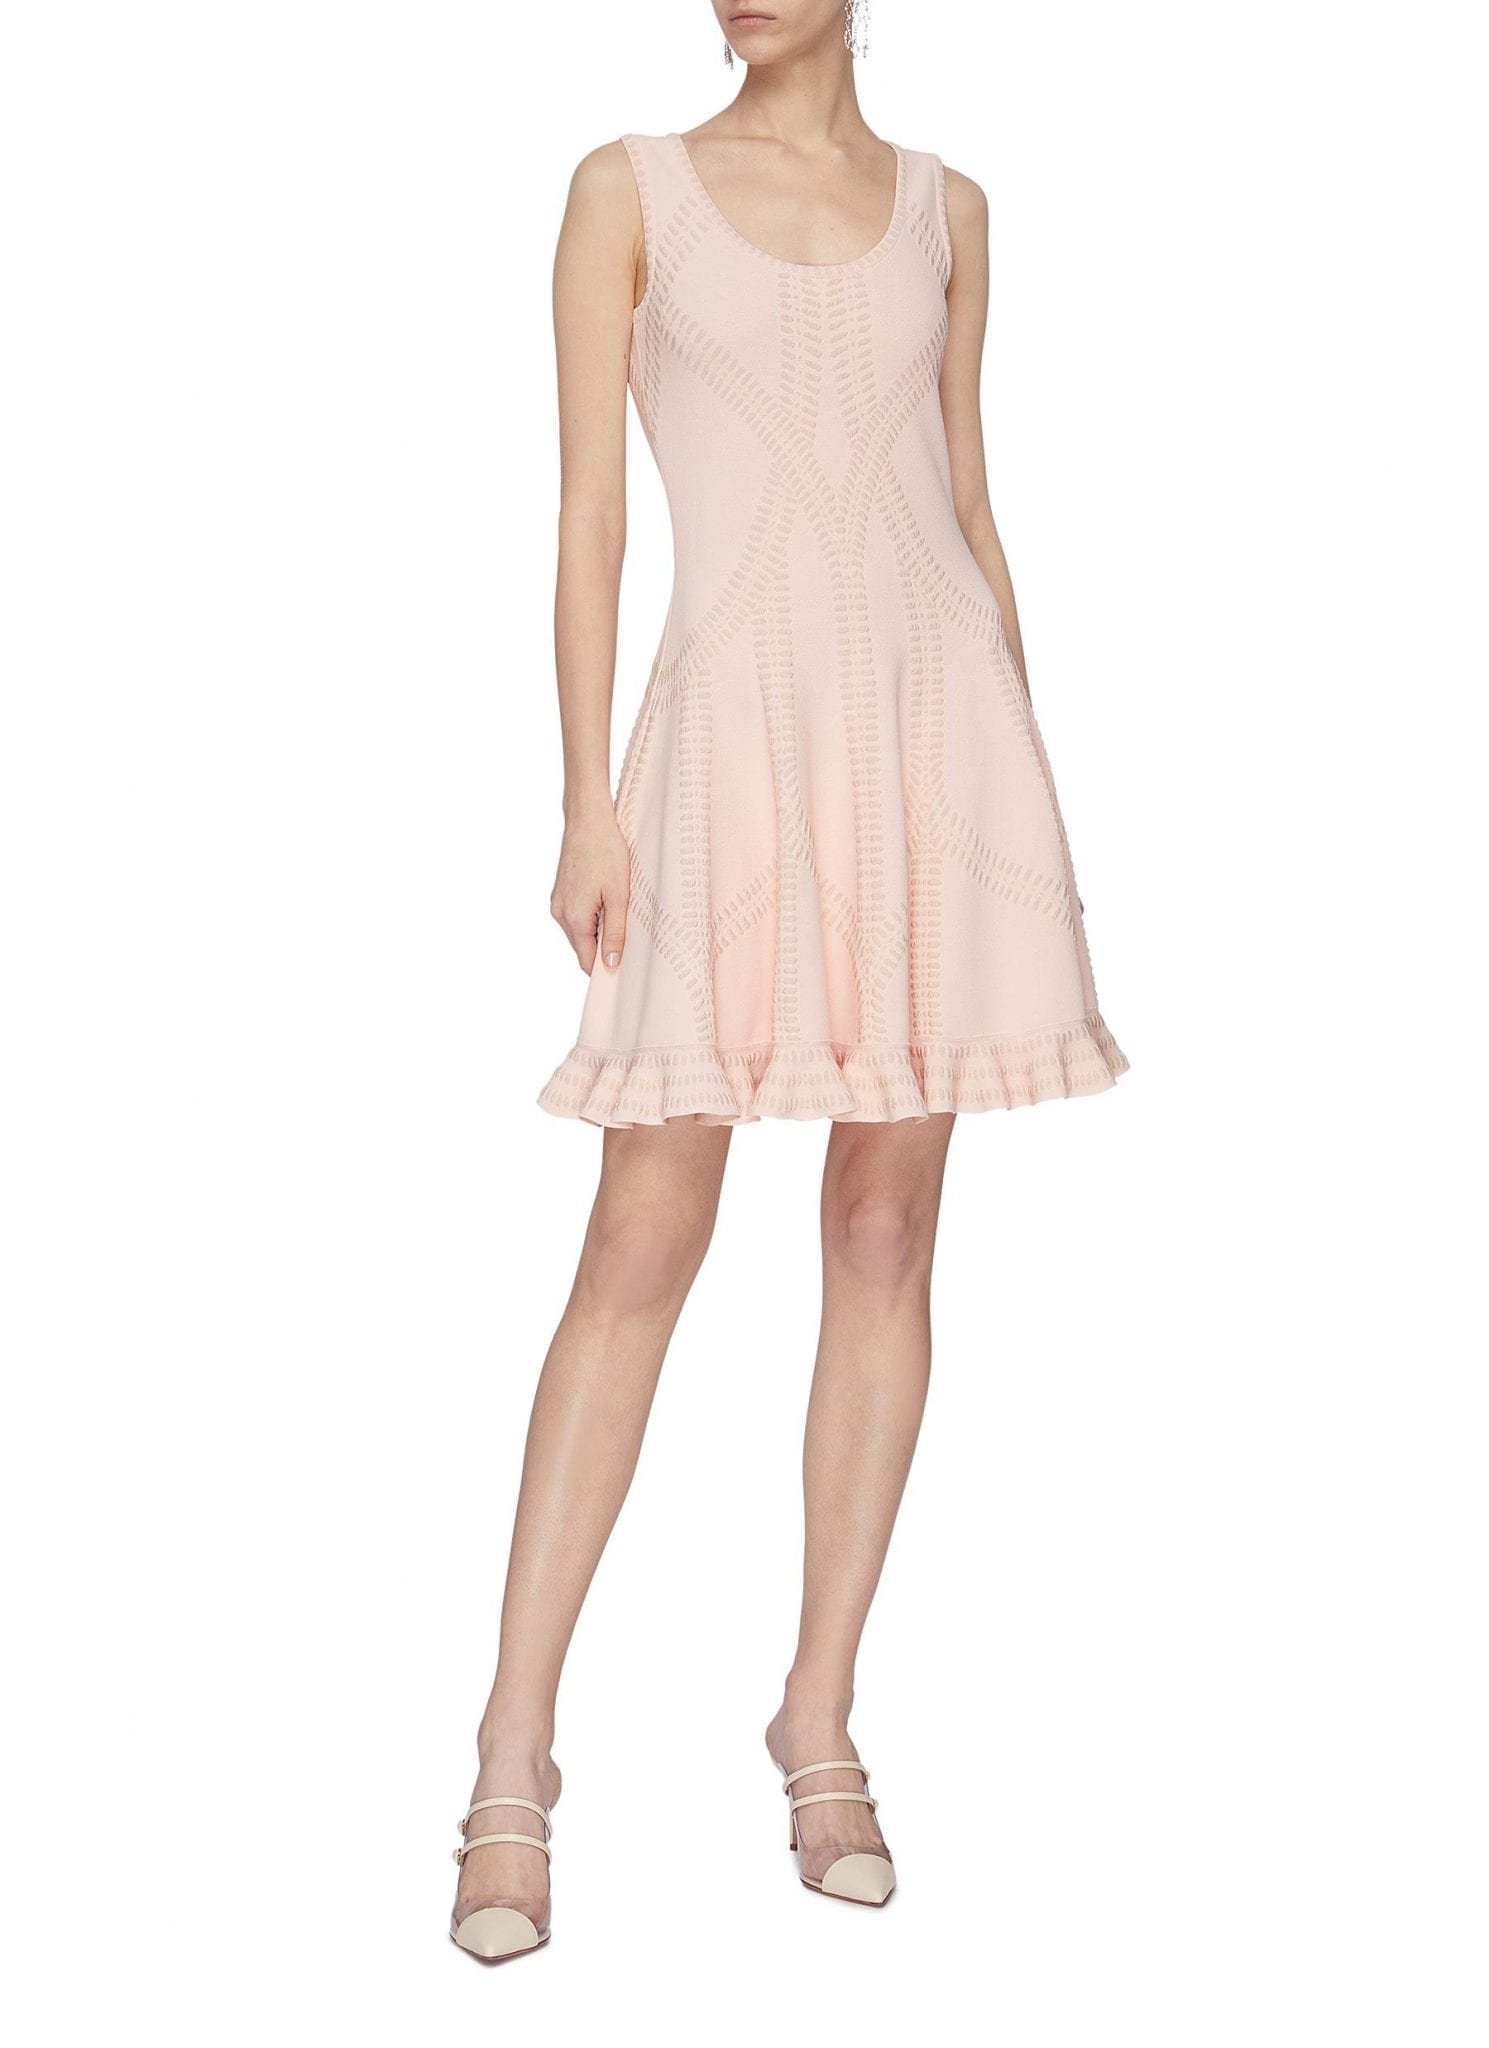 ALEXANDER MCQUEEN Cut Out Ruffle Hem Dress